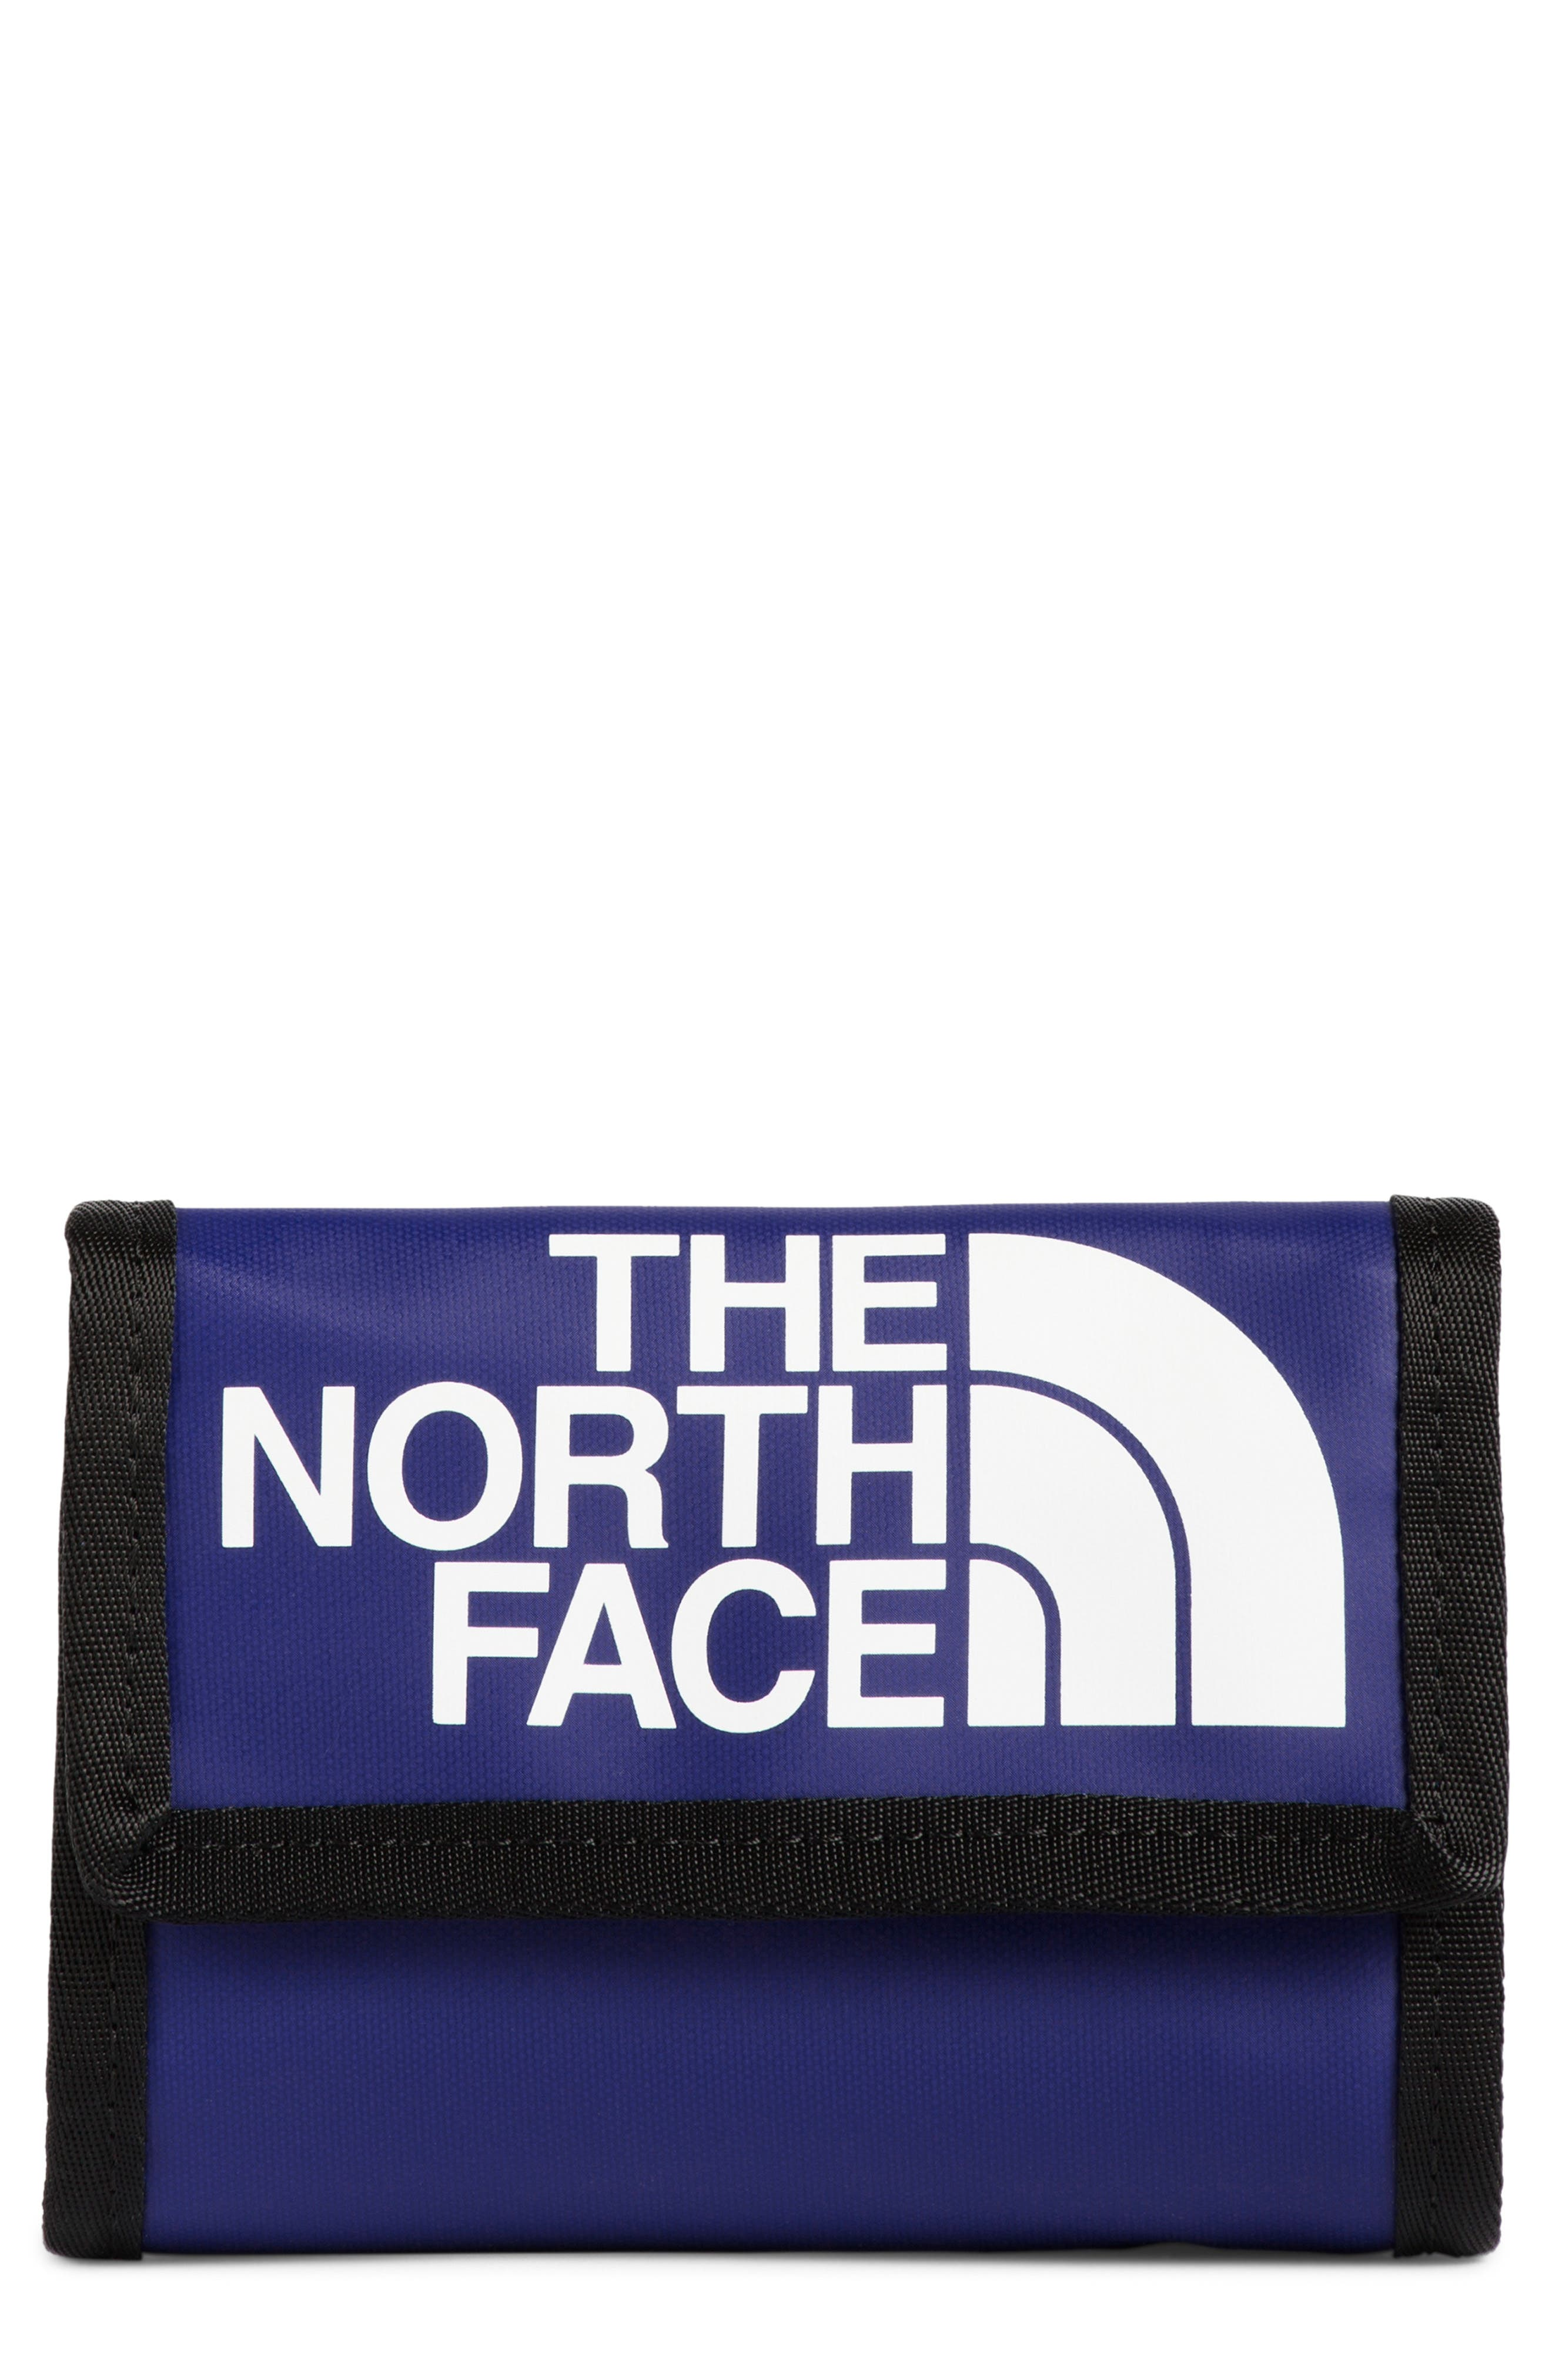 THE NORTH FACE Base Camp Wallet, Main, color, AZTEC BLUE/TNF BLACK